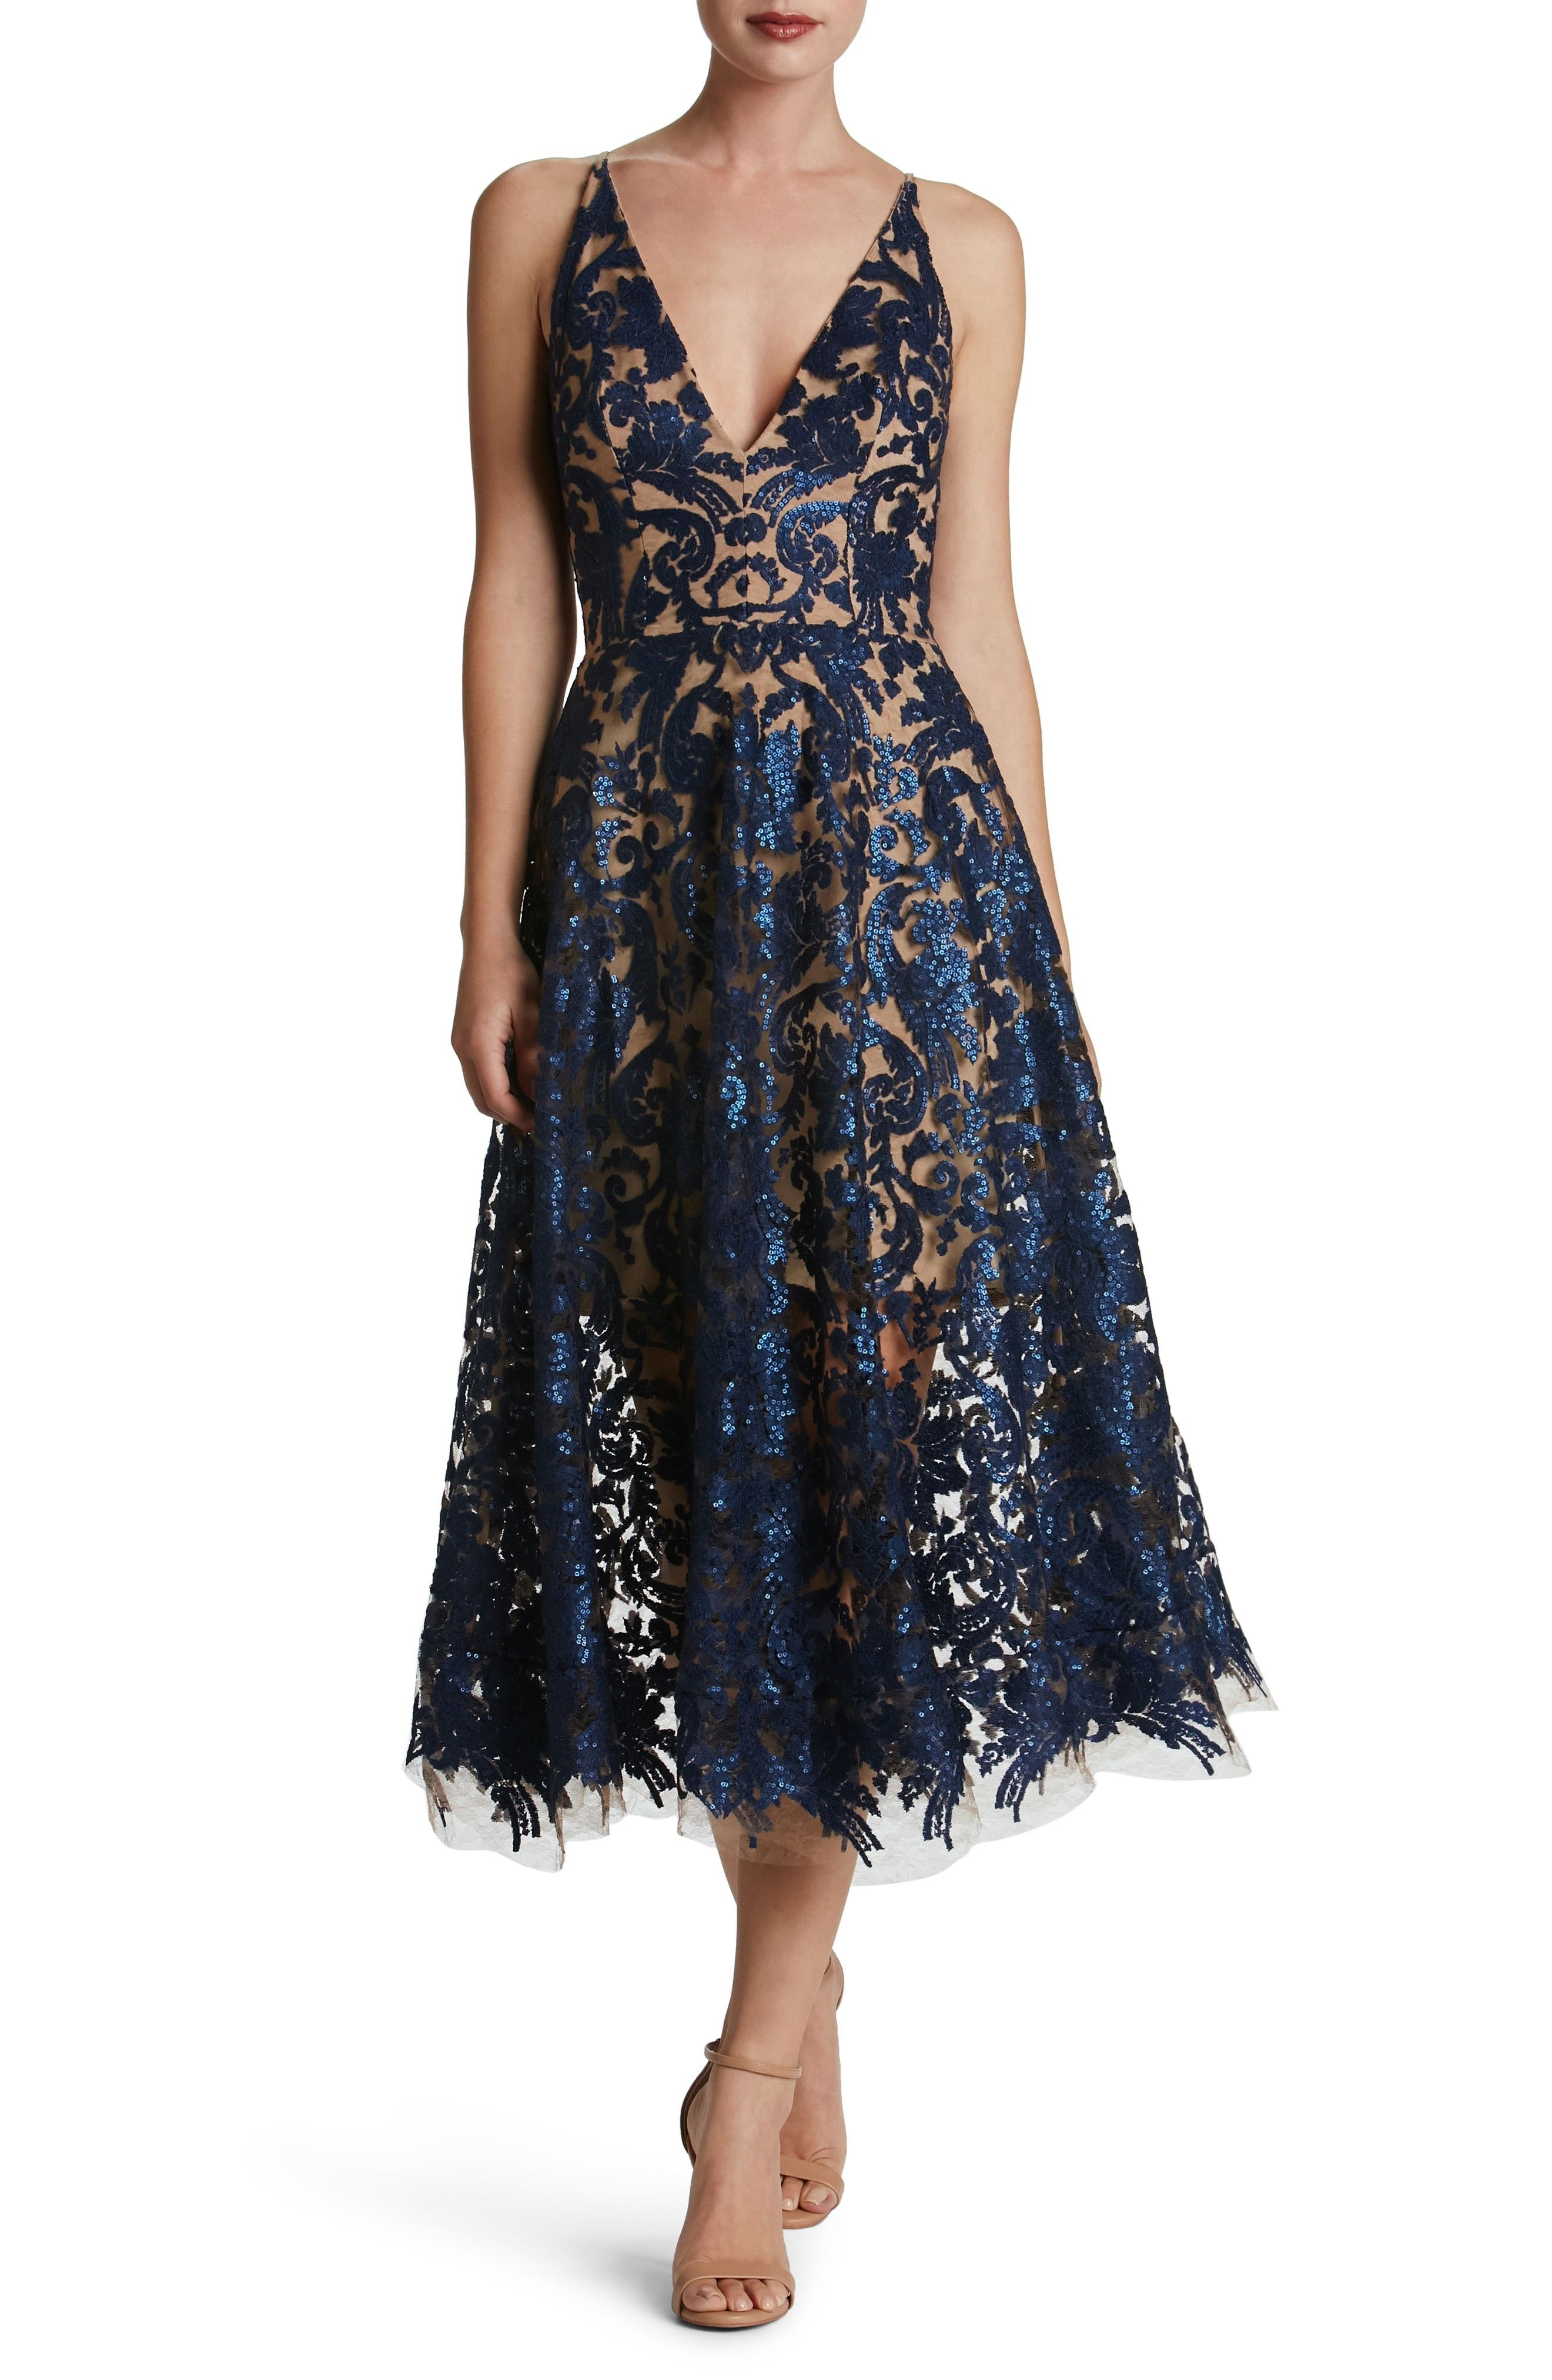 Navy Lace And Sheer Cocktail Dress Midi Tea Length Wedding Guest Dresses Blair Embellished Fit Flare Dre Flare Dress Dress The Population Coctail Dresses [ 4048 x 2640 Pixel ]